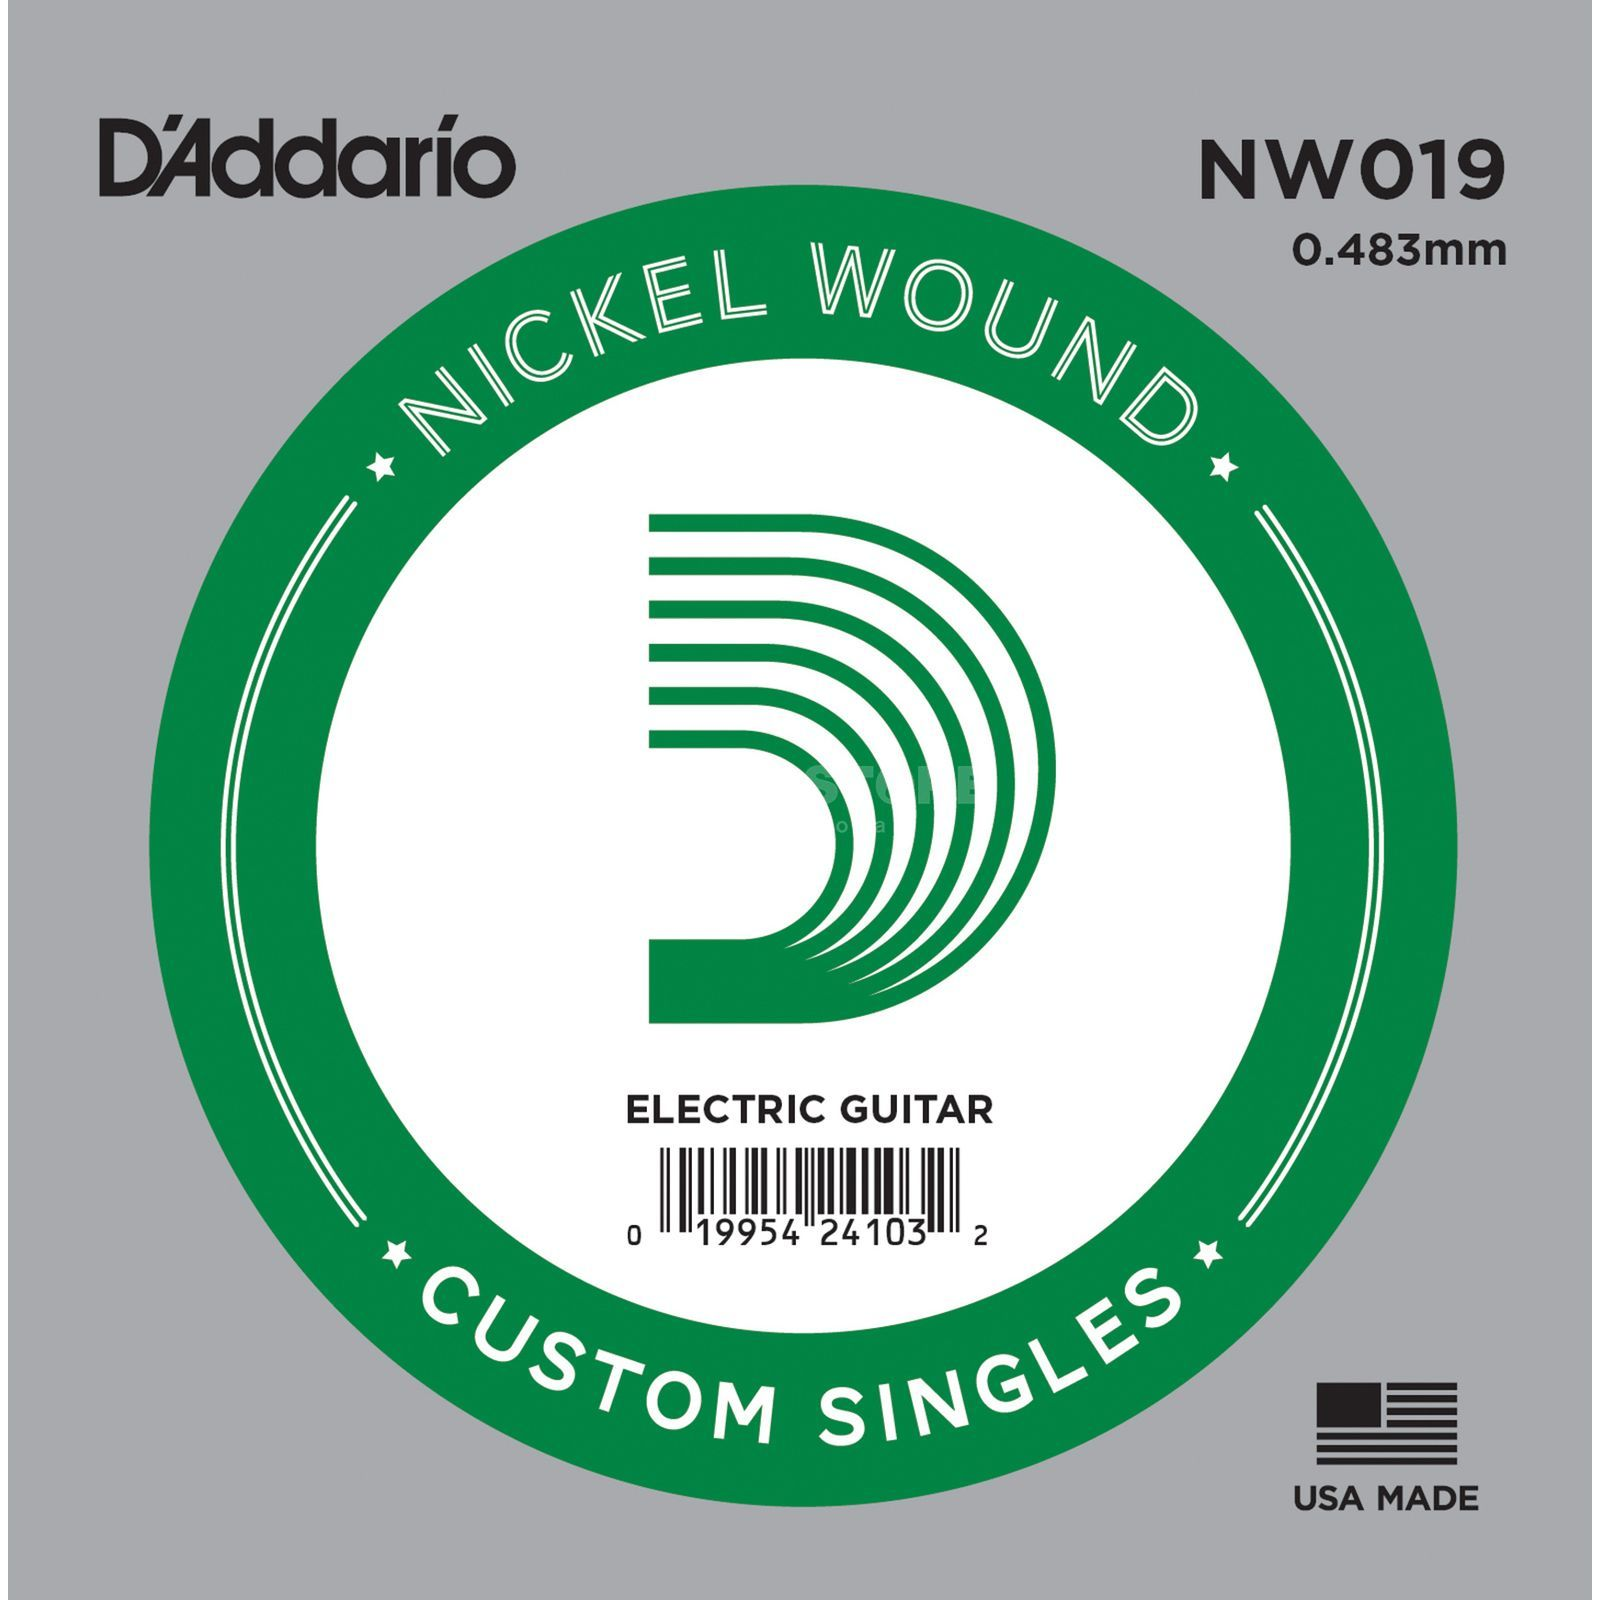 D'Addario Single String NW019 Nickelwound Product Image